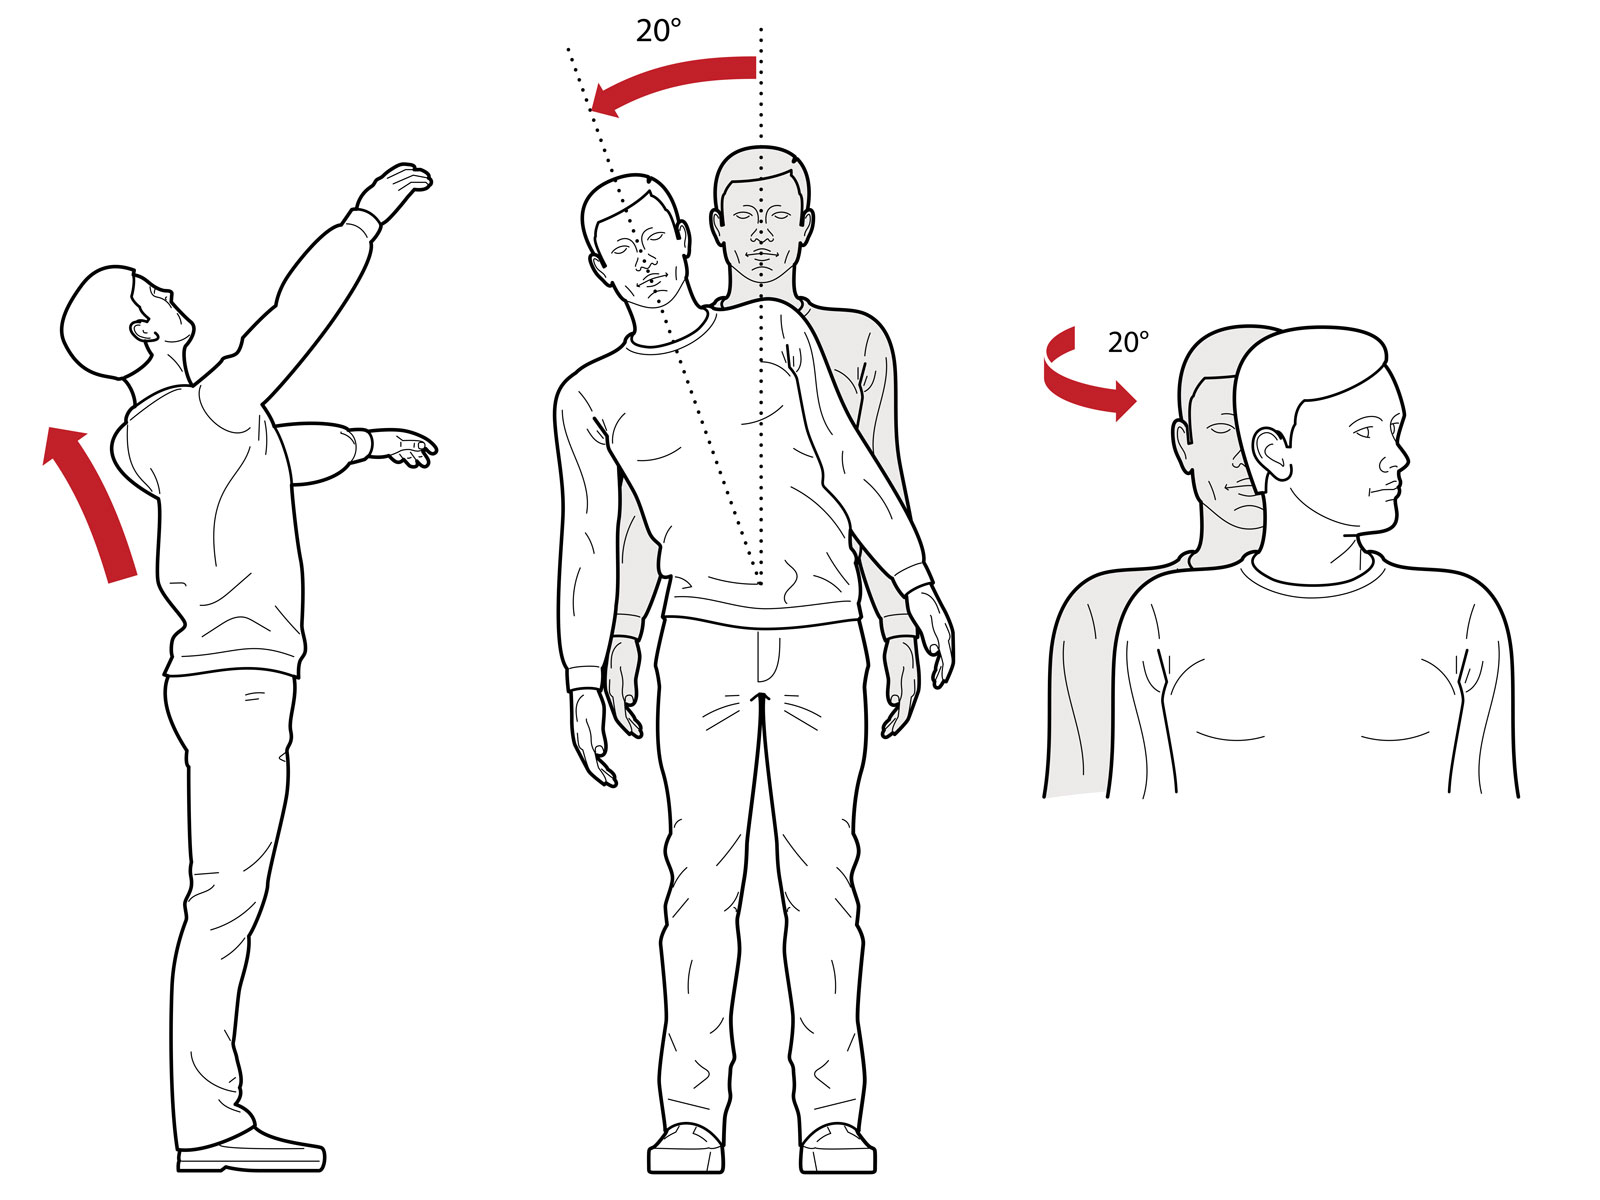 OHS diagrams showing repetitive head and back movements